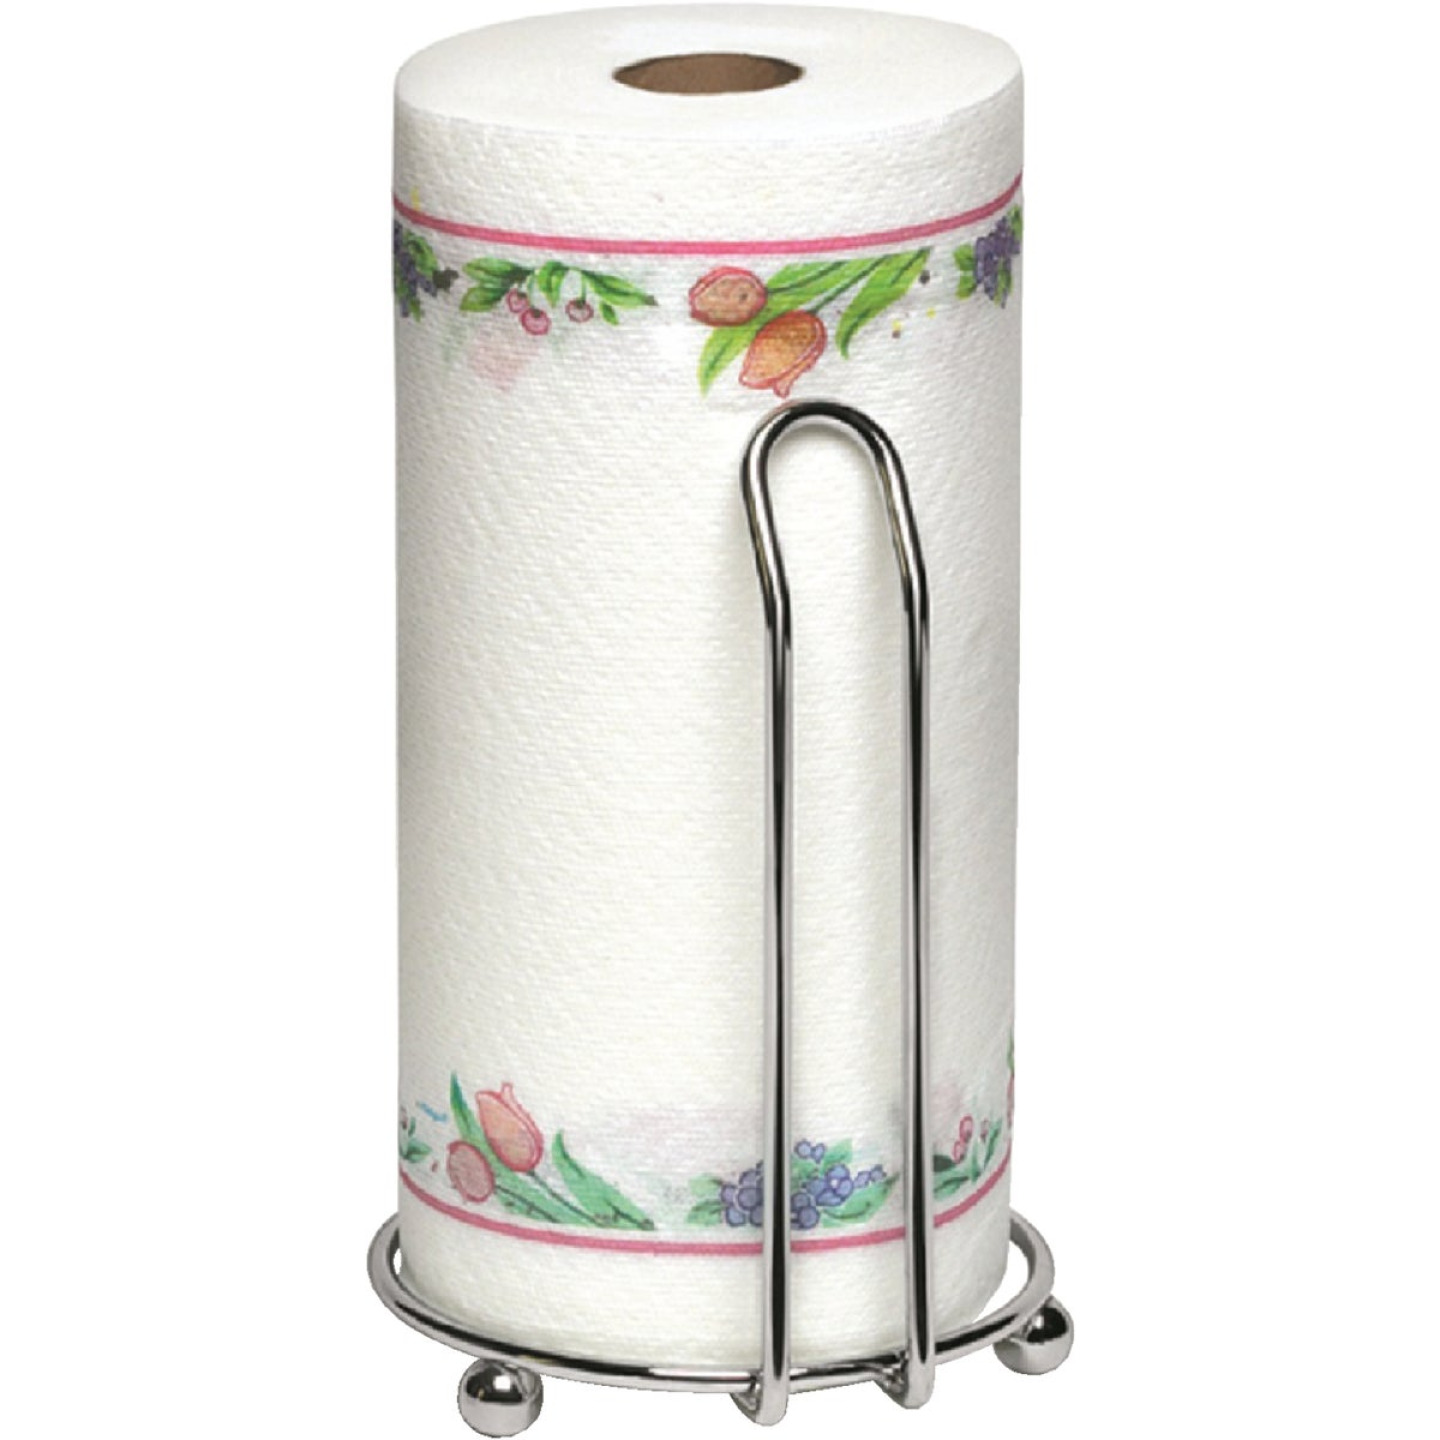 Spectrum Pantry Works Deluxe Countertop Paper Towel Holder Image 1